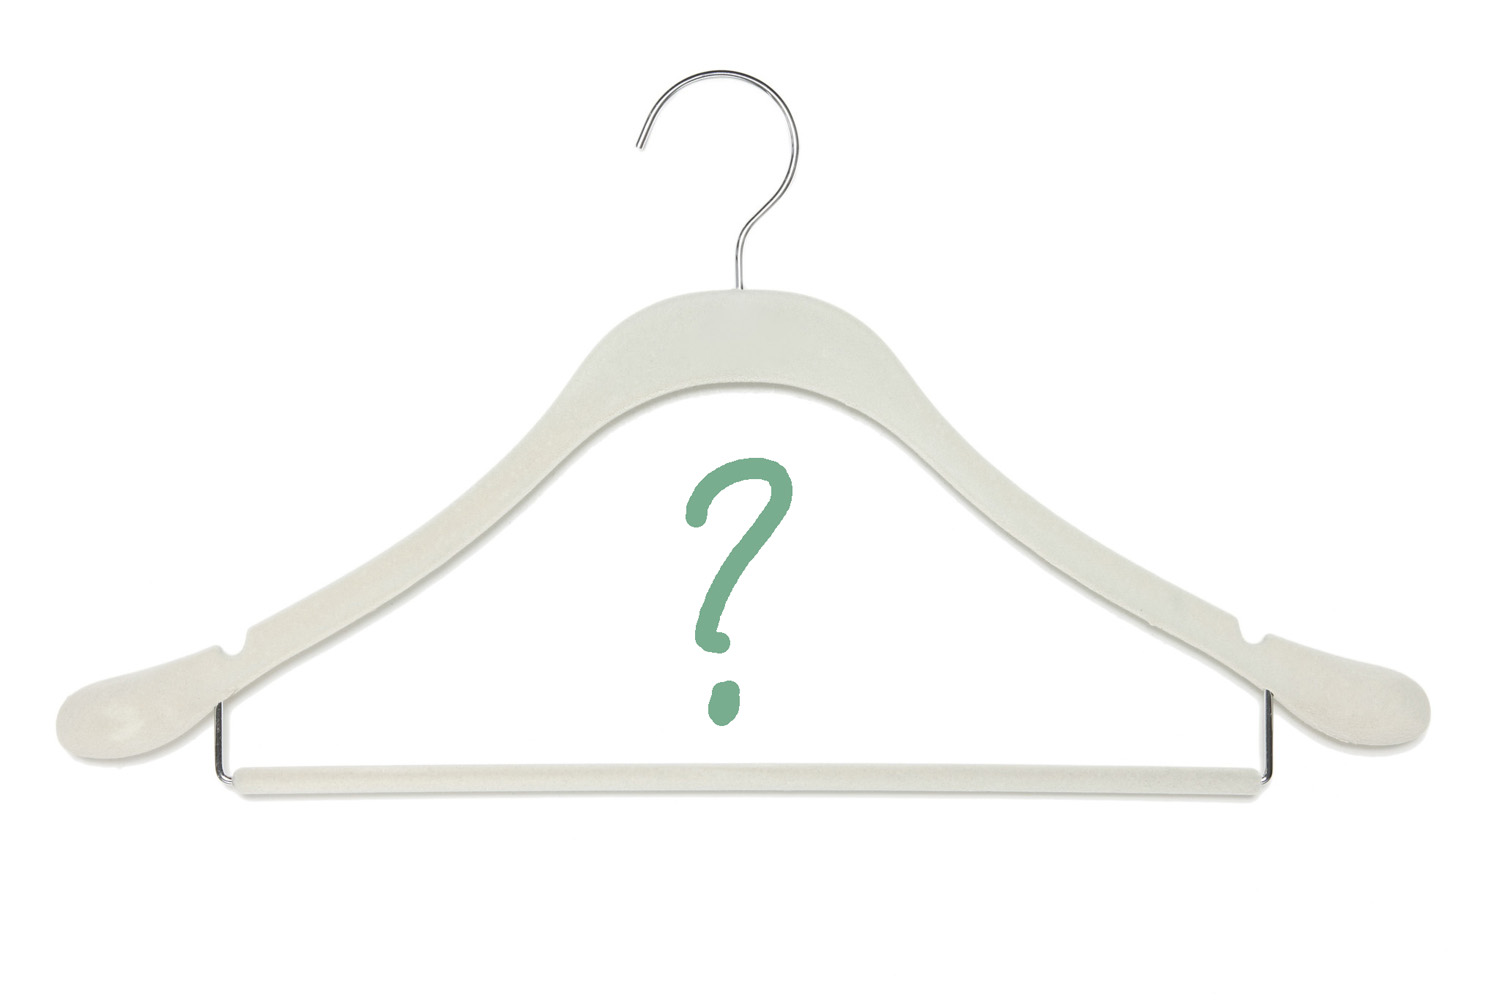 slim_clothing_hanger_with_bar_14